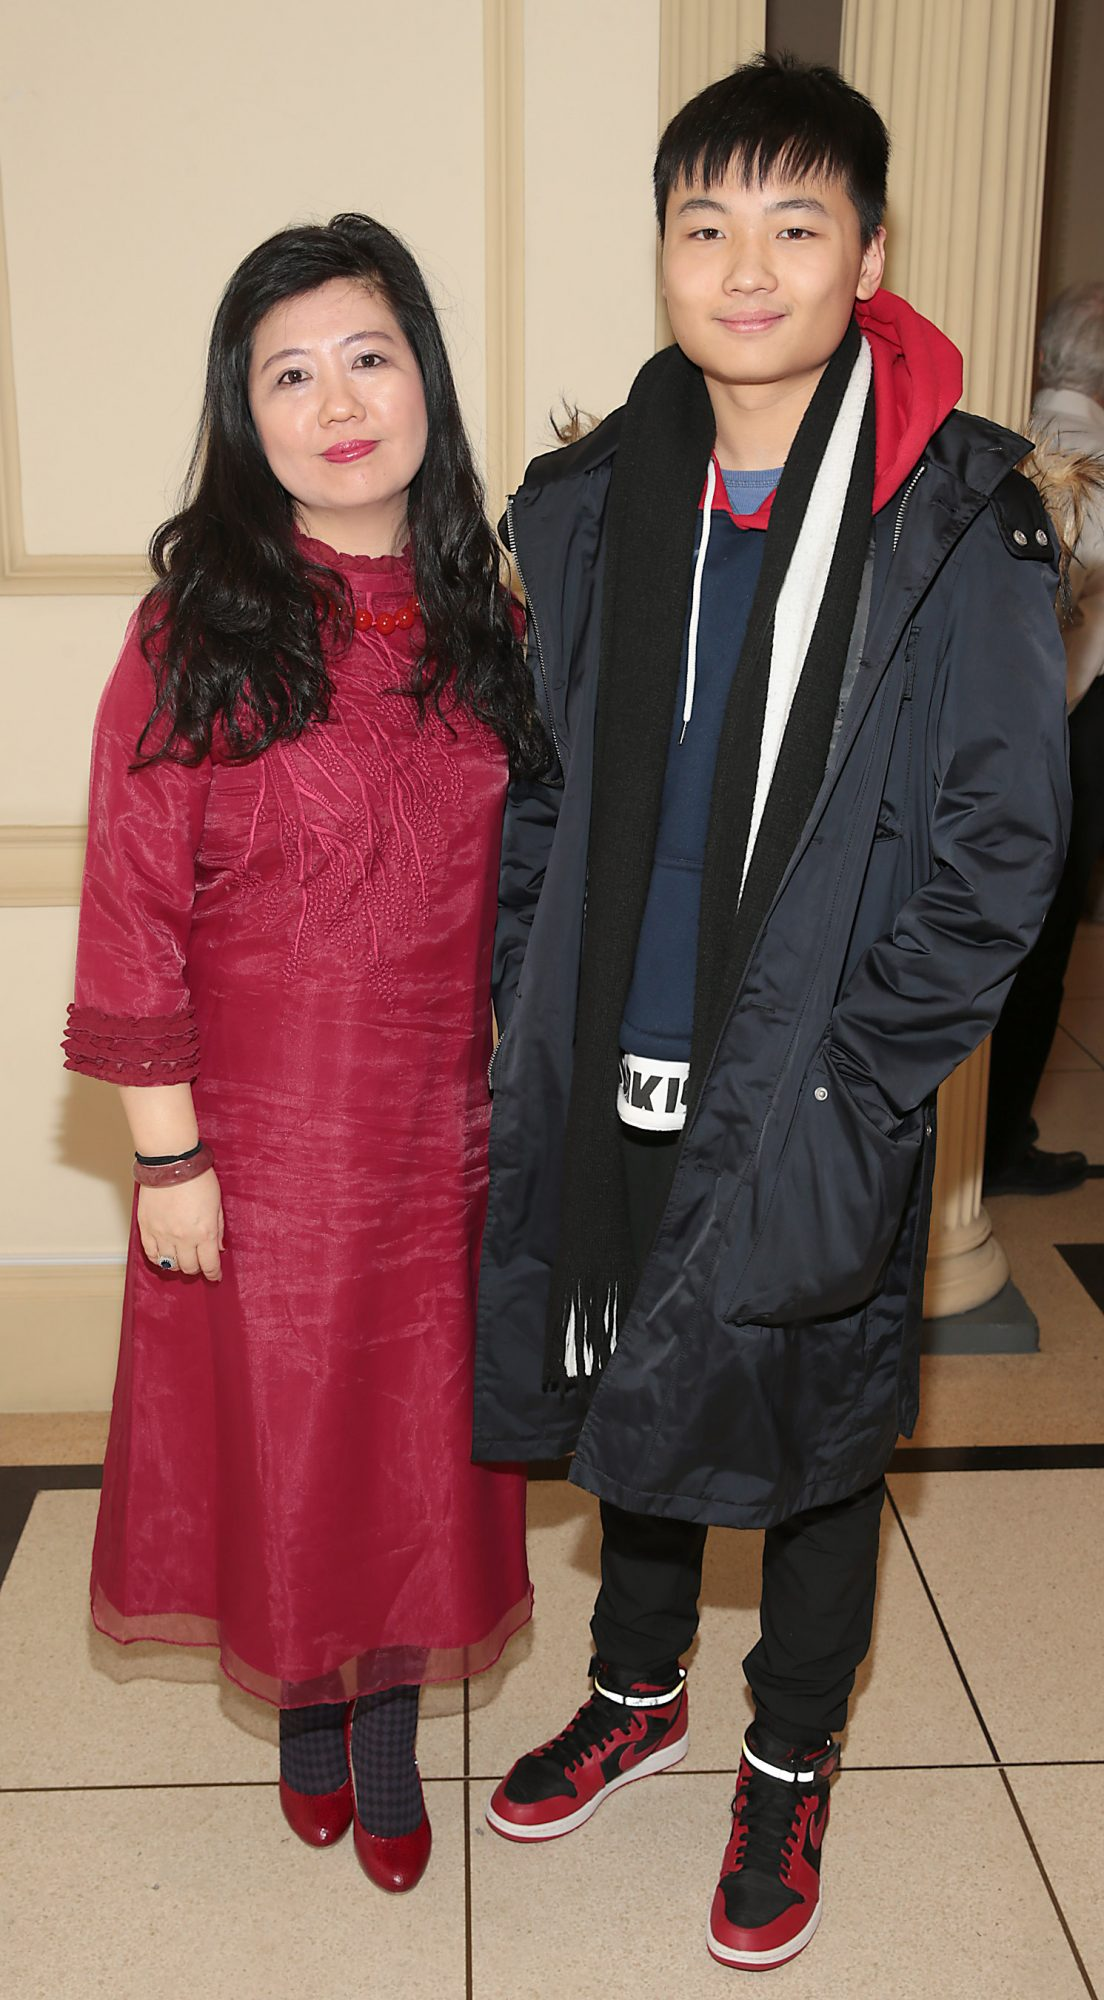 Penny Pu and Borris Pu pictured at the official opening event of Dublin Chinese New Year Festival 2019 at The Hugh Lane Gallery sponsored by Kildare Village. Dublin Chinese New Year Festival runs until 17th February for more see www.dublinchinesenewyear.com   Pic Brian McEvoy